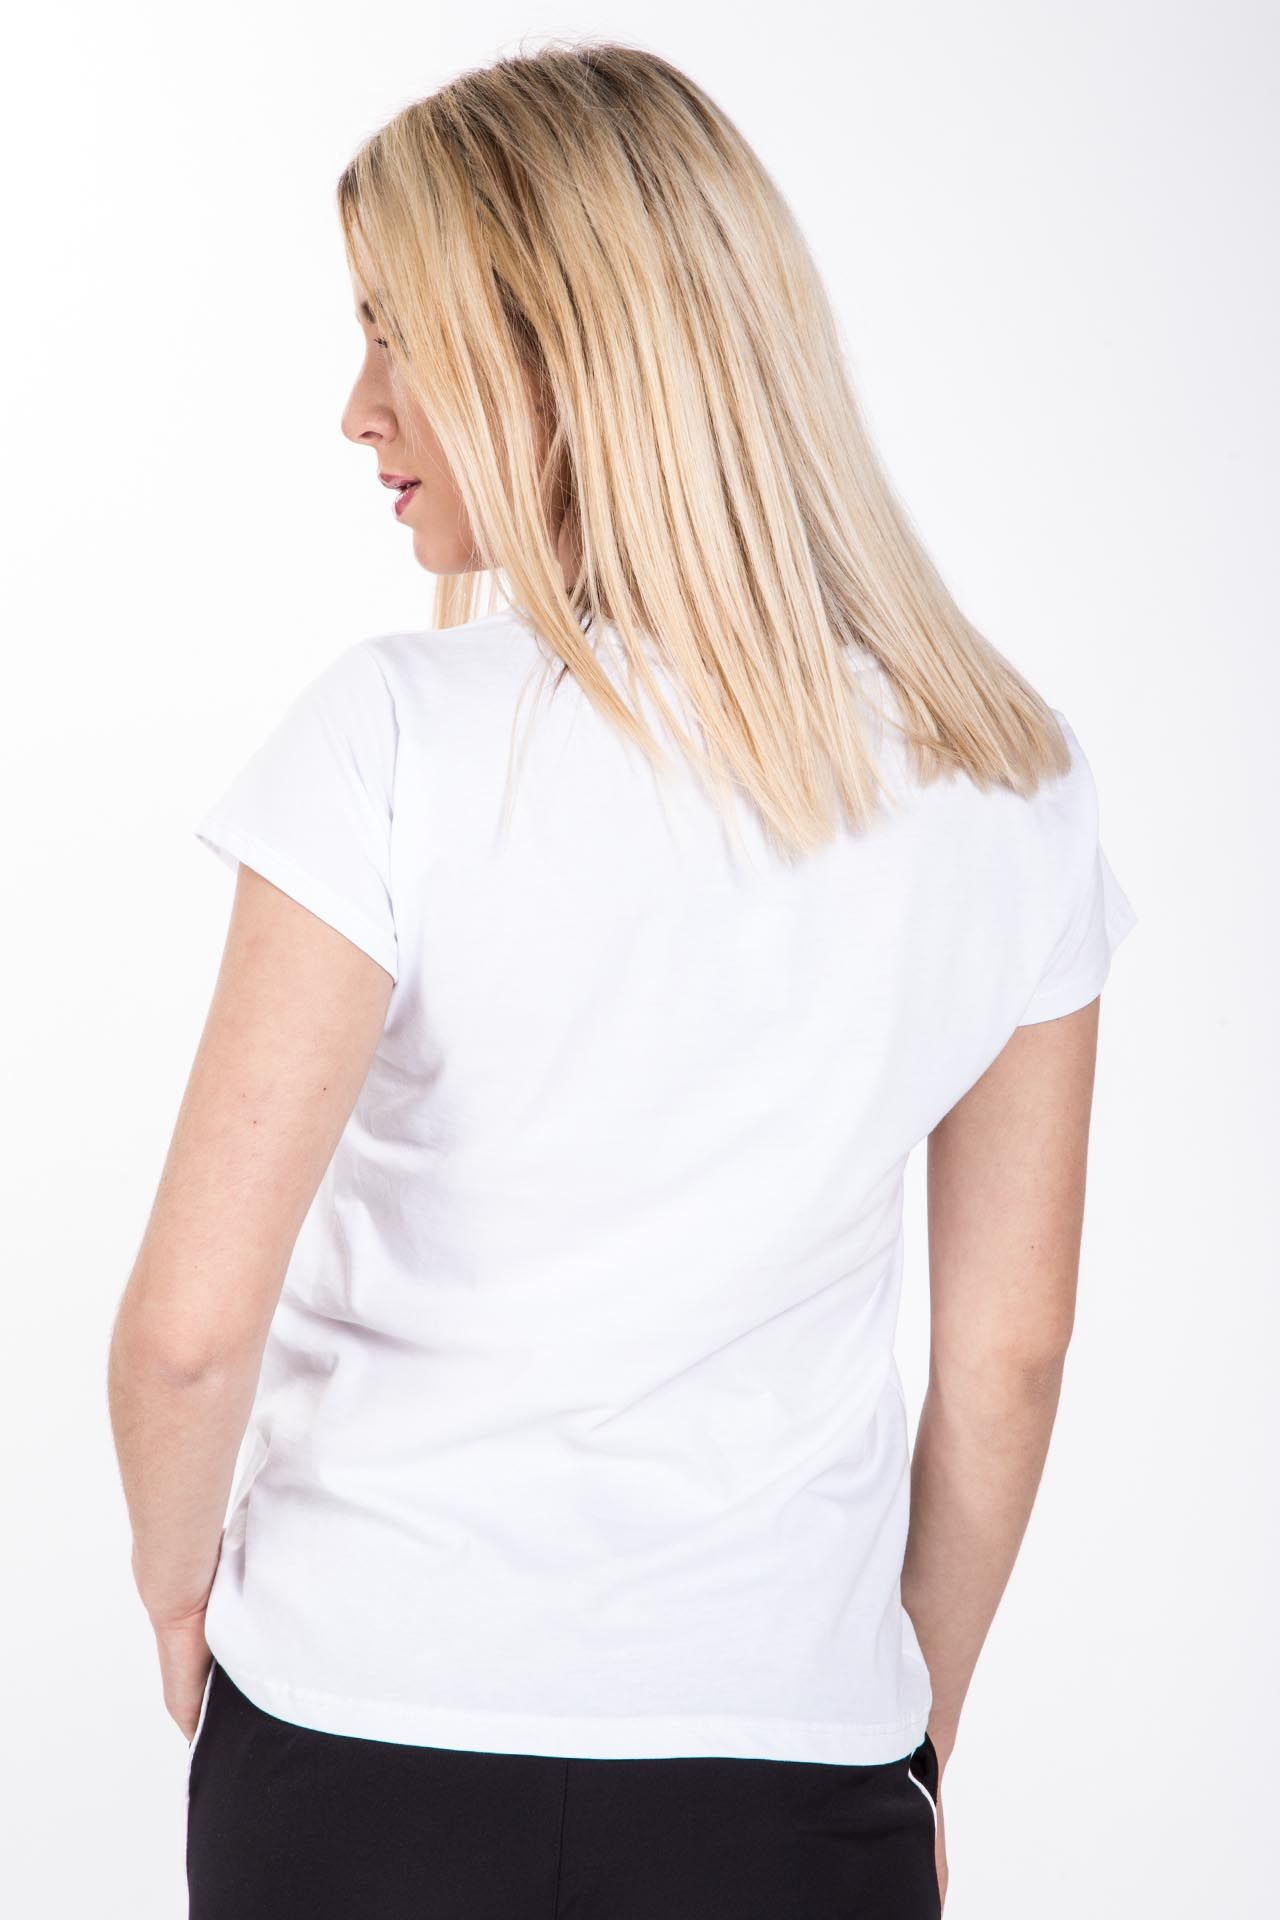 T-shirt con stampa - bianca con stampa nera Brend